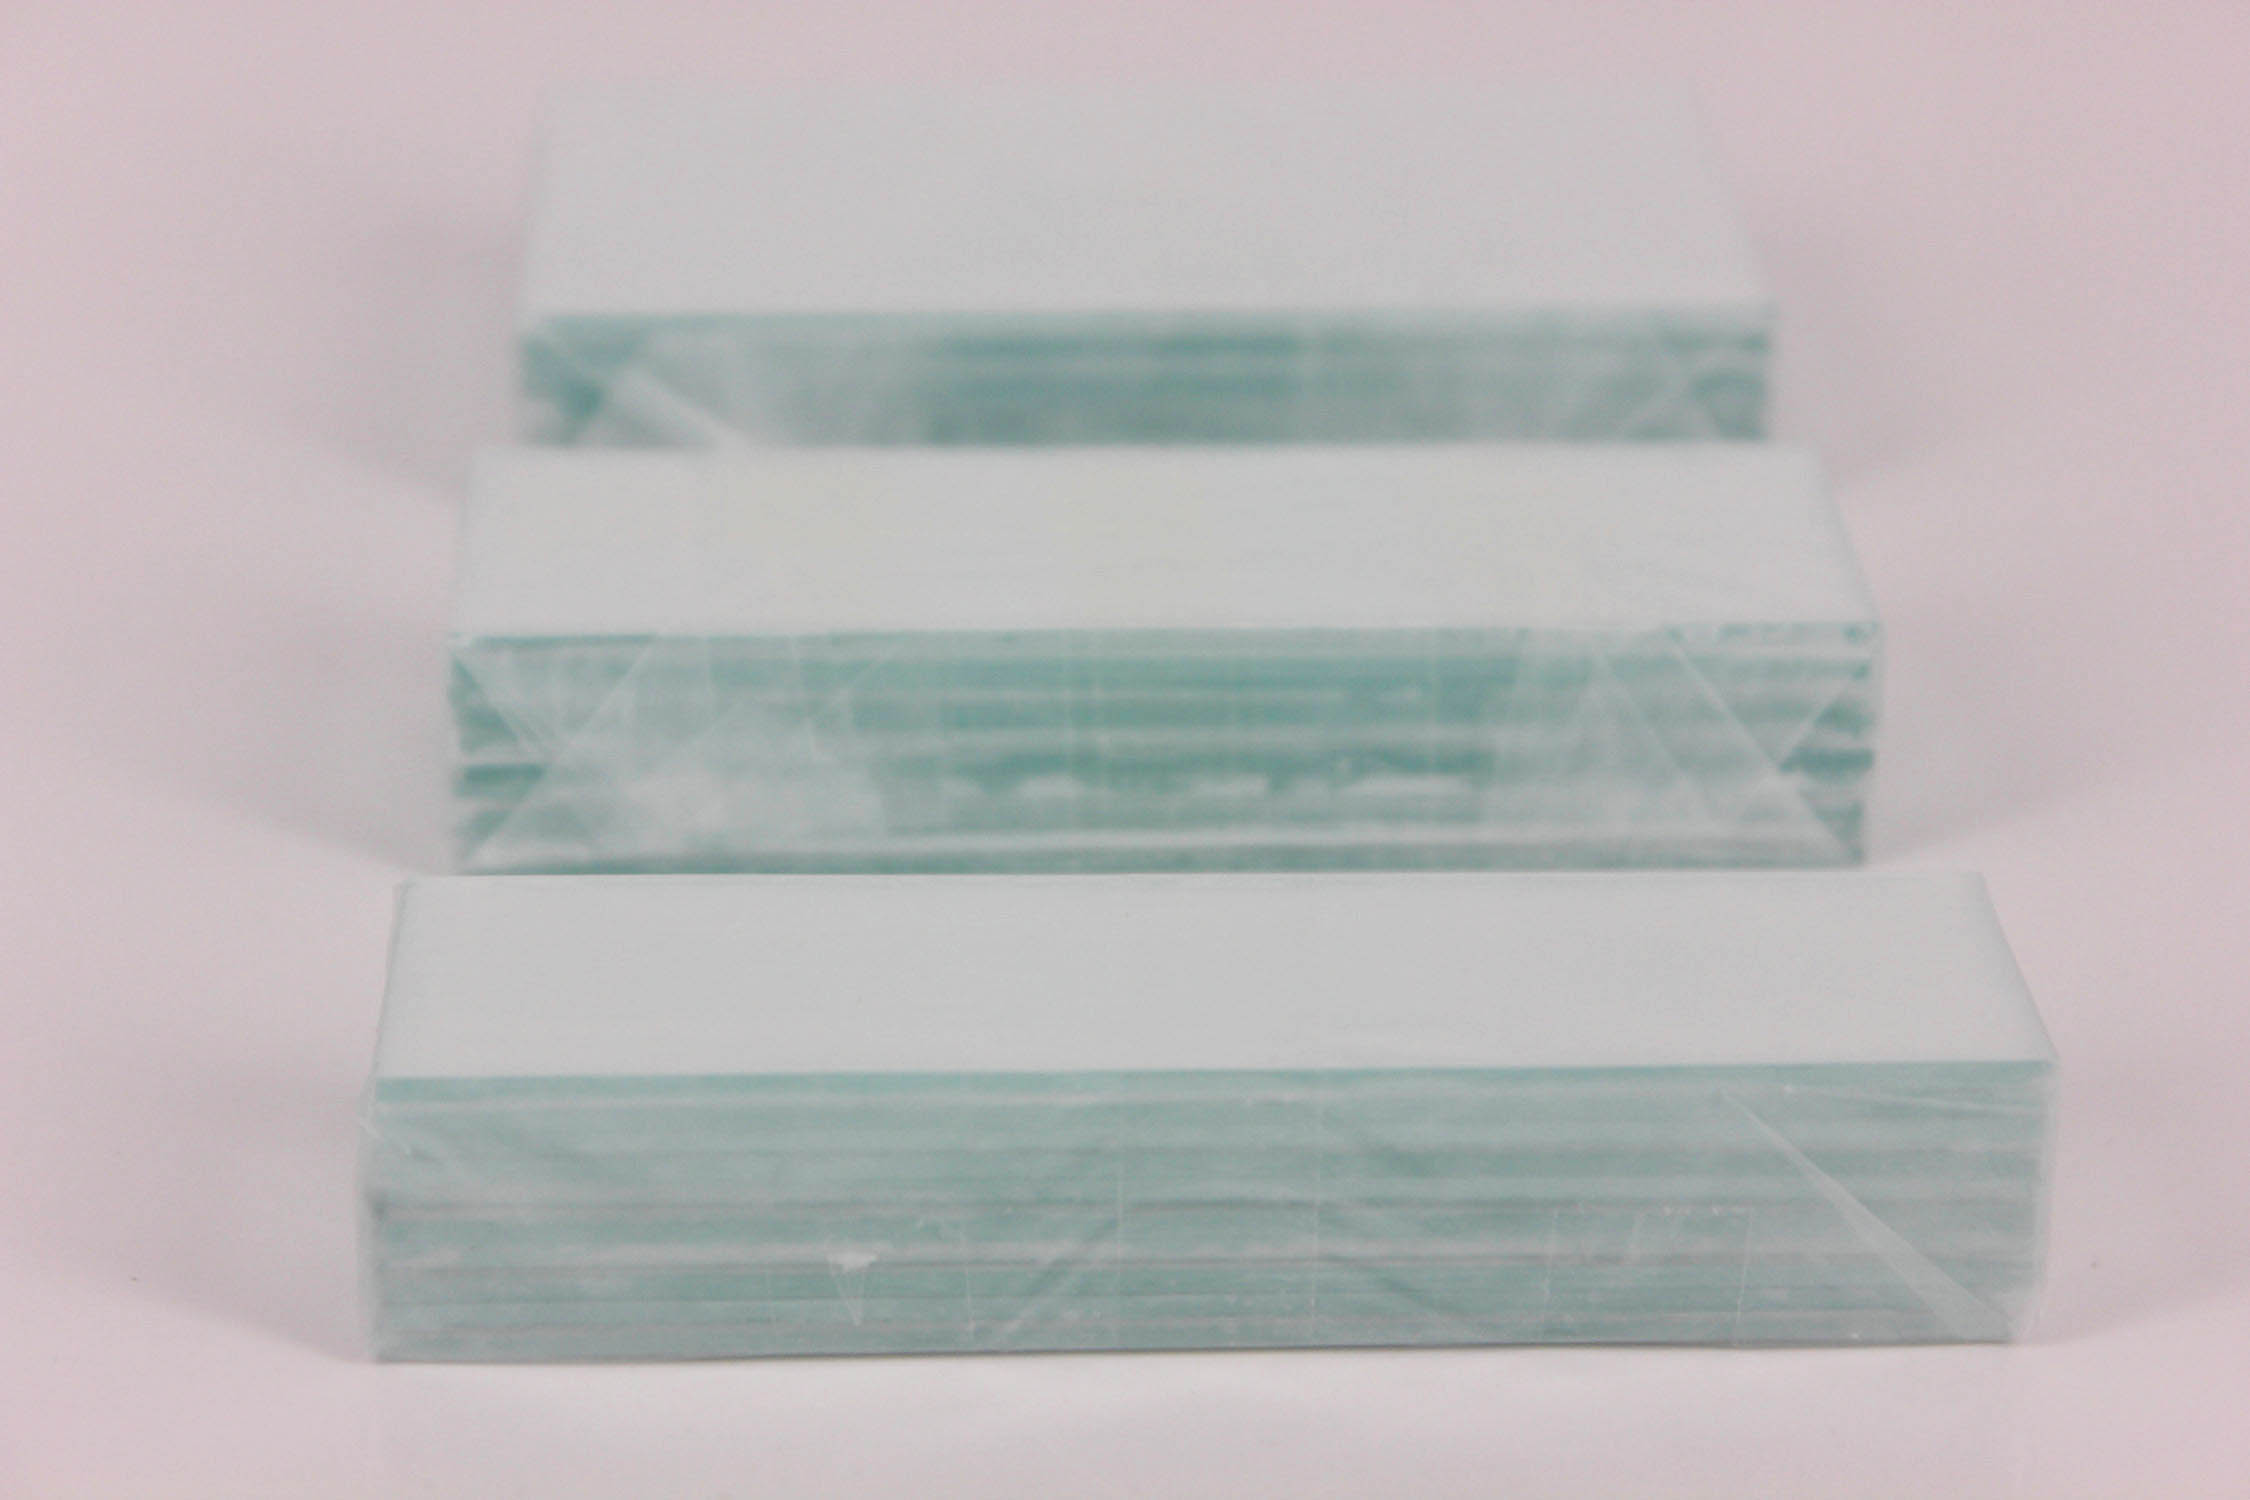 Core siliconvalley T6221 tlc silica gel plate efficient plate silicone plate